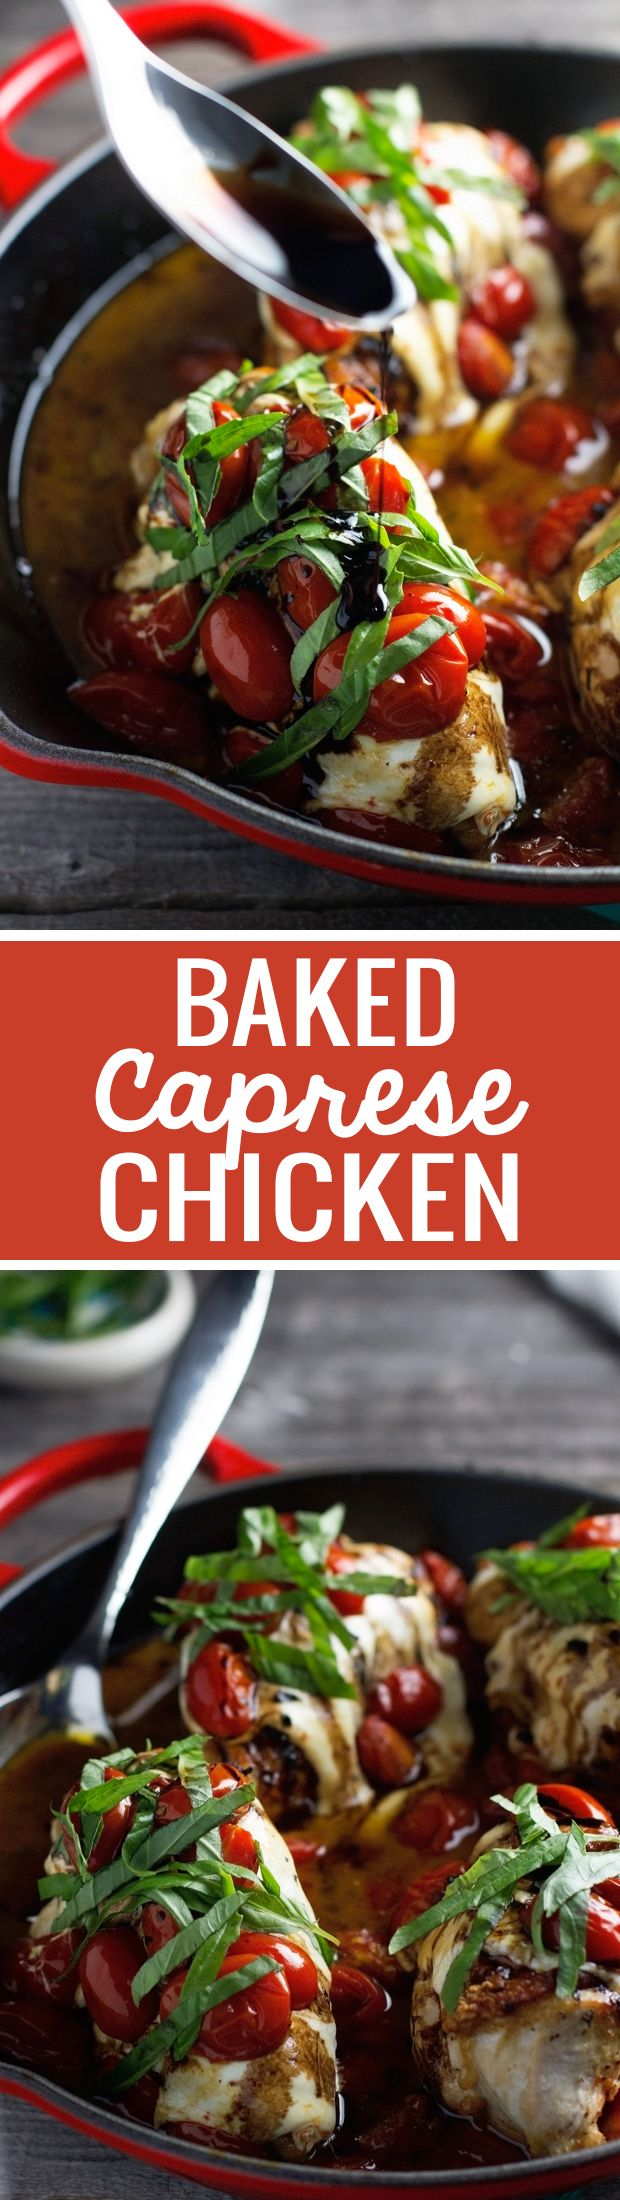 Baked Caprese Chicken - with the most delicious balsamic reduction of your LIFE. Ready in under an hour and perfect and so DELICIOUS!